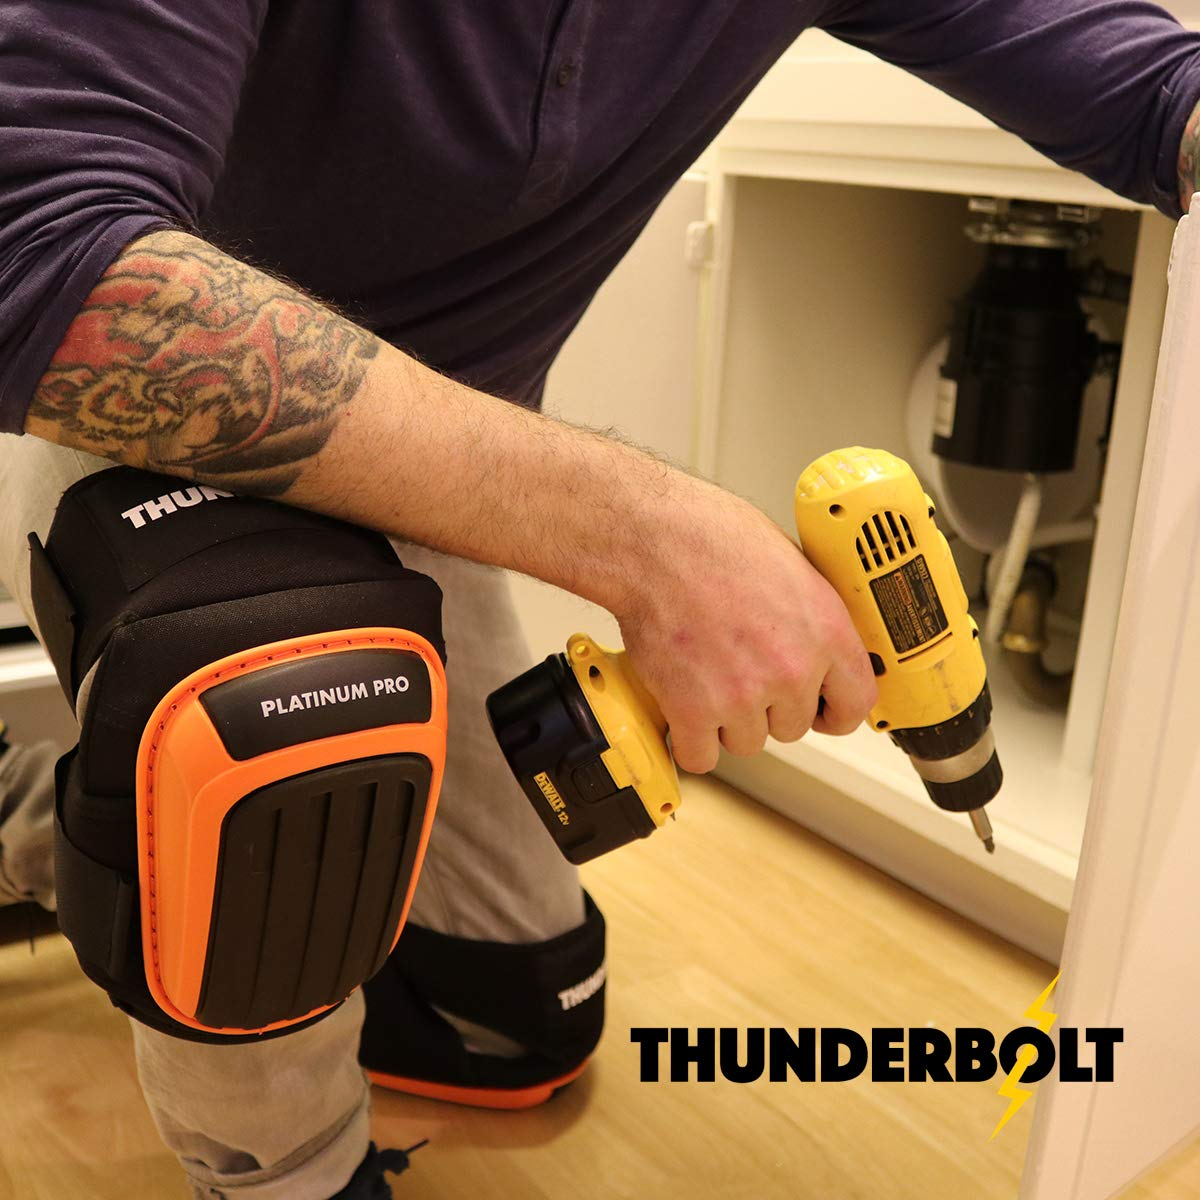 Knee Pads for Work by Thunderbolt with Heavy Duty Foam Cushioning and Gel Cushion Perfect for Construction, Flooring and Gardening with Adjustable Anti-Slip Straps by Thunderbolt (Image #2)